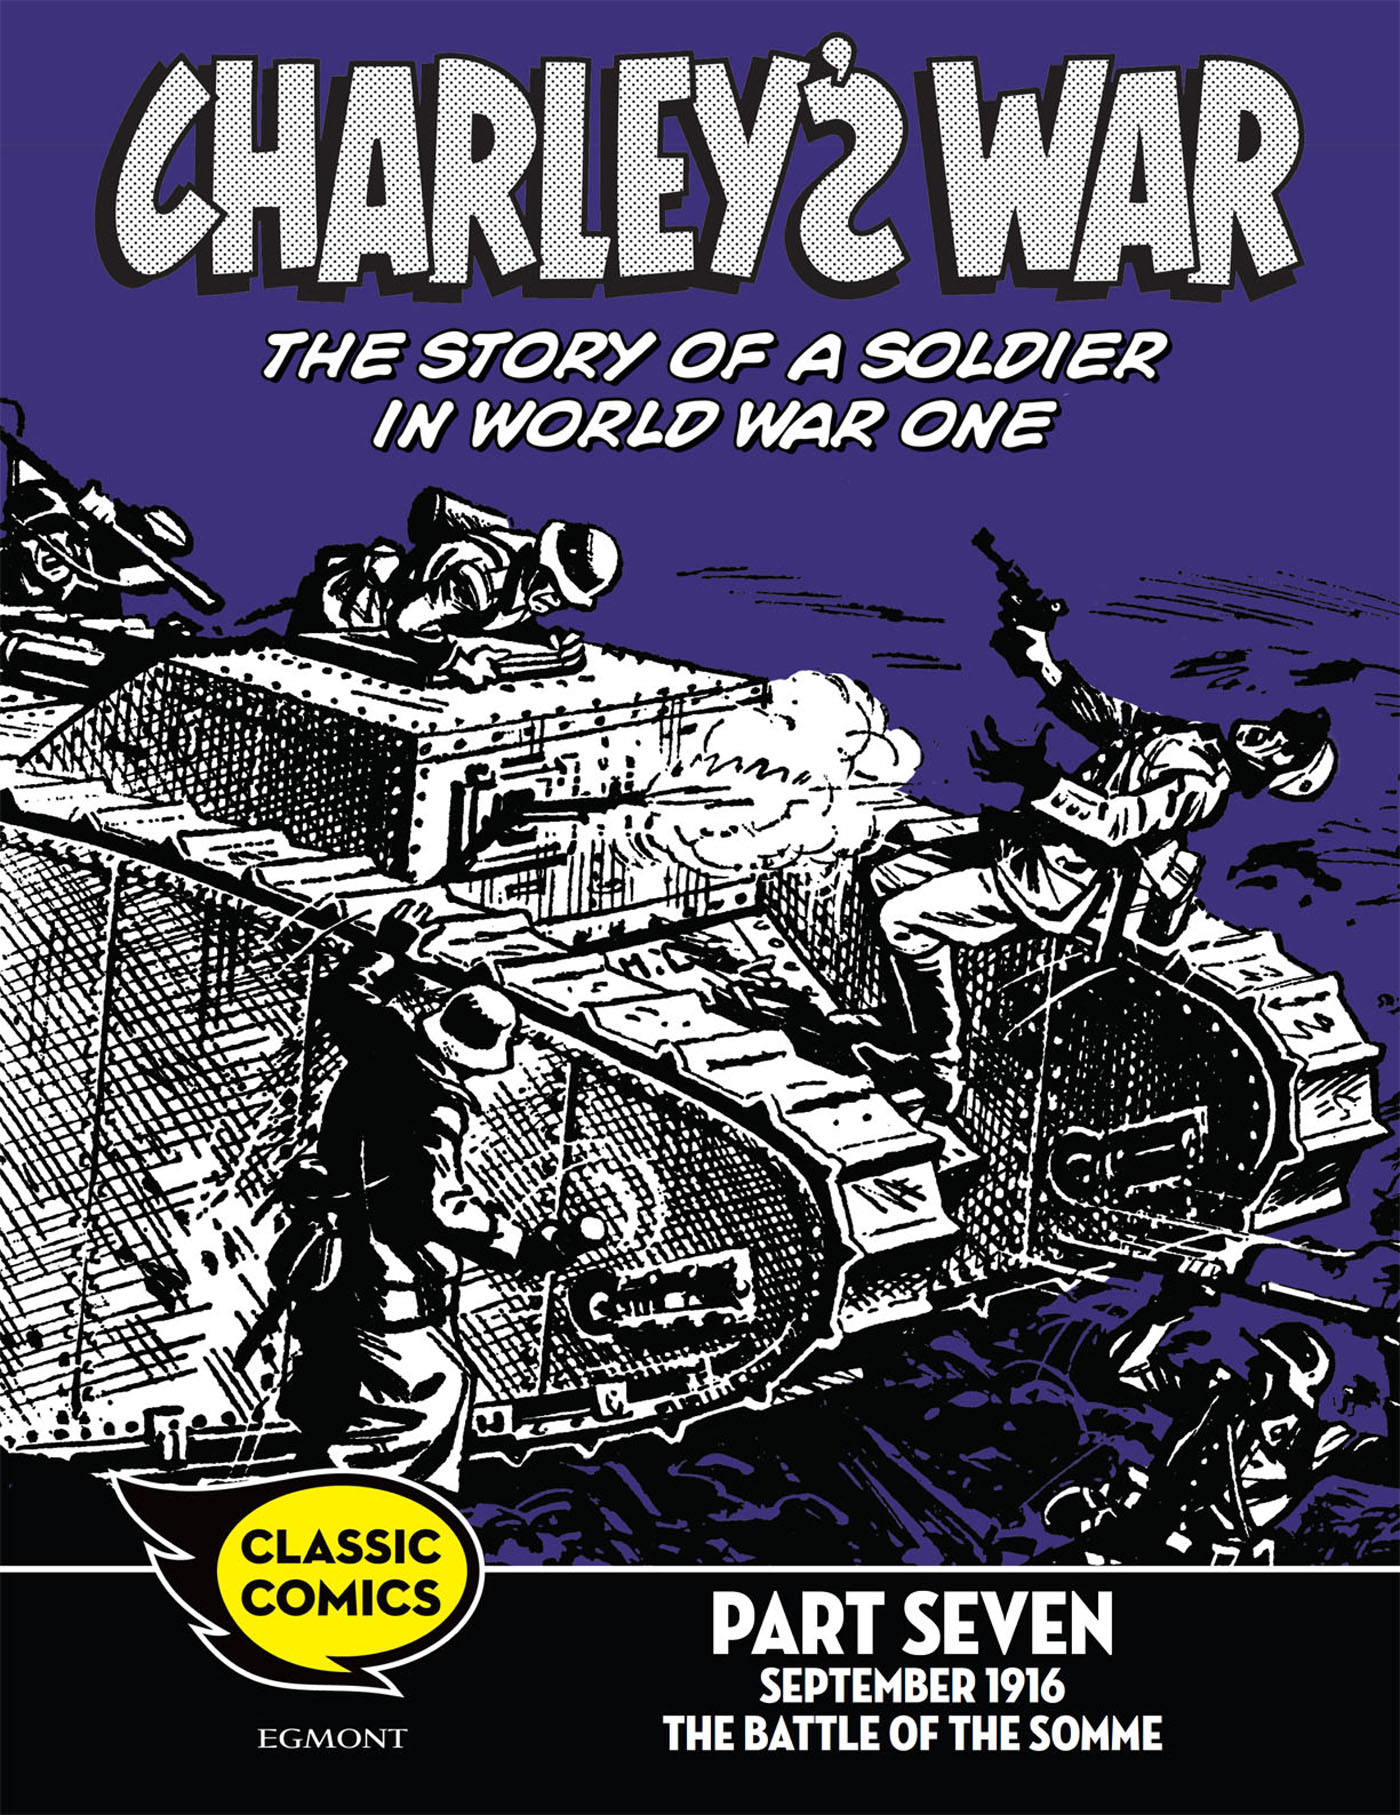 Charley's War Comic Part Seven: September 1916 The Battle of the Somme